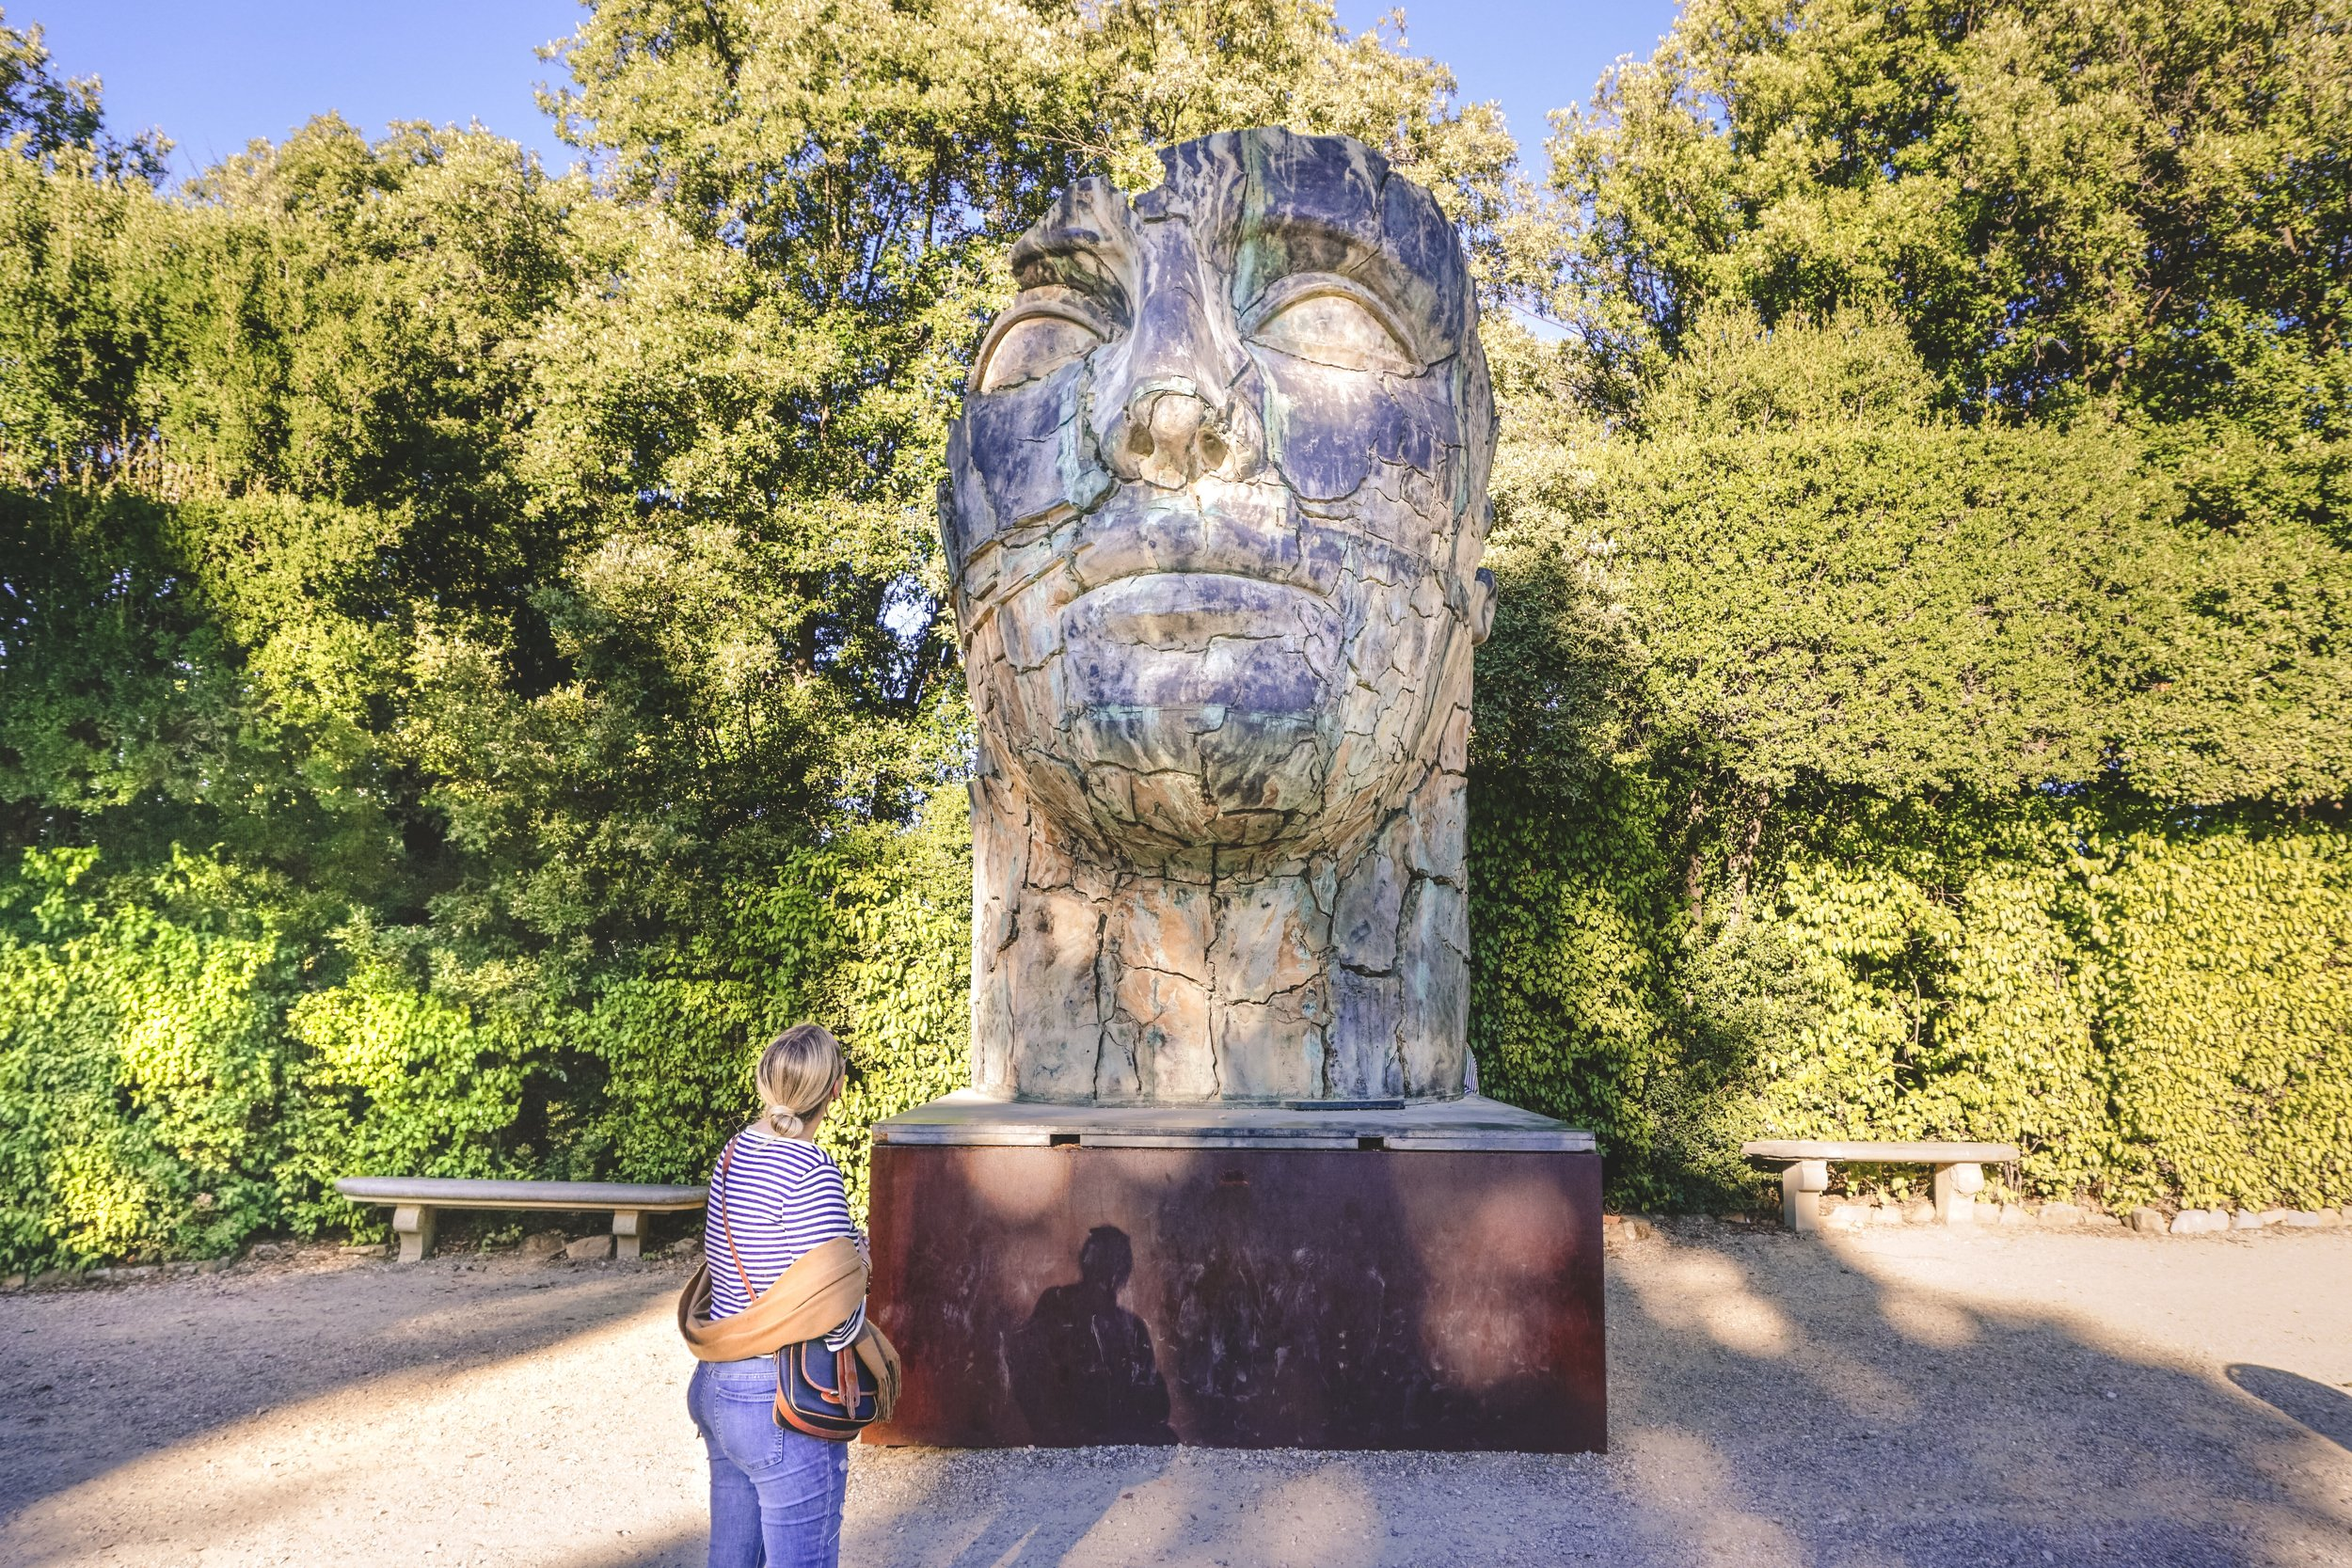 The Tindaro Screpolato in the Boboli Garden provokes as much emotion now as it has for decades.